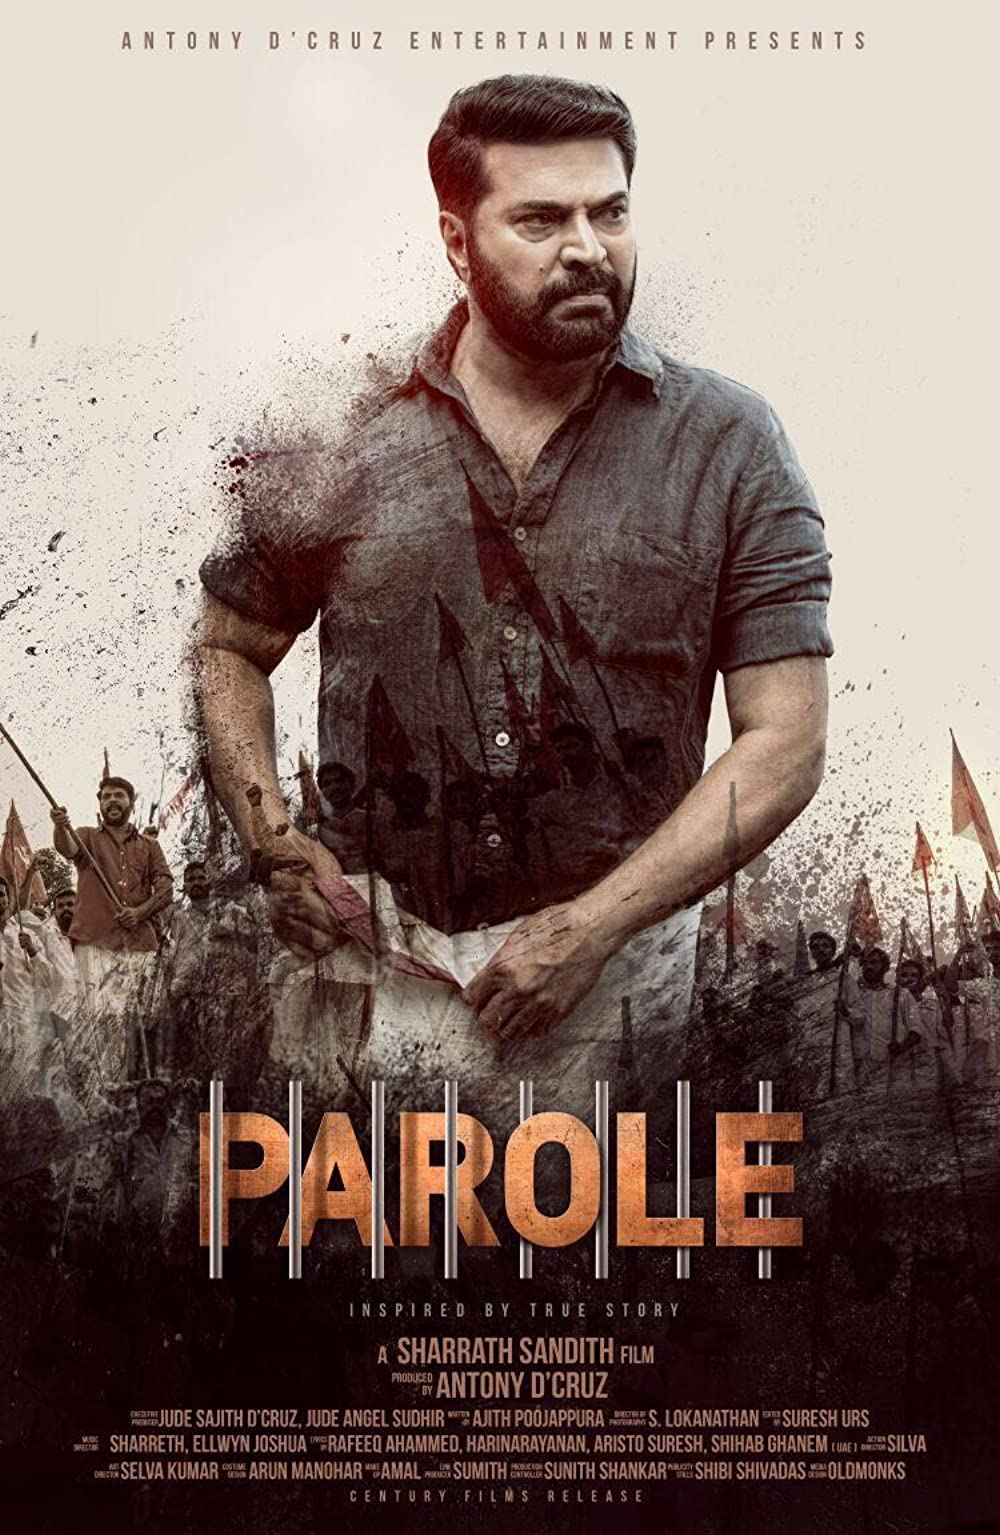 Parol (Parole) 2021 Hindi Dubbed 480p HDRip 400MB Download